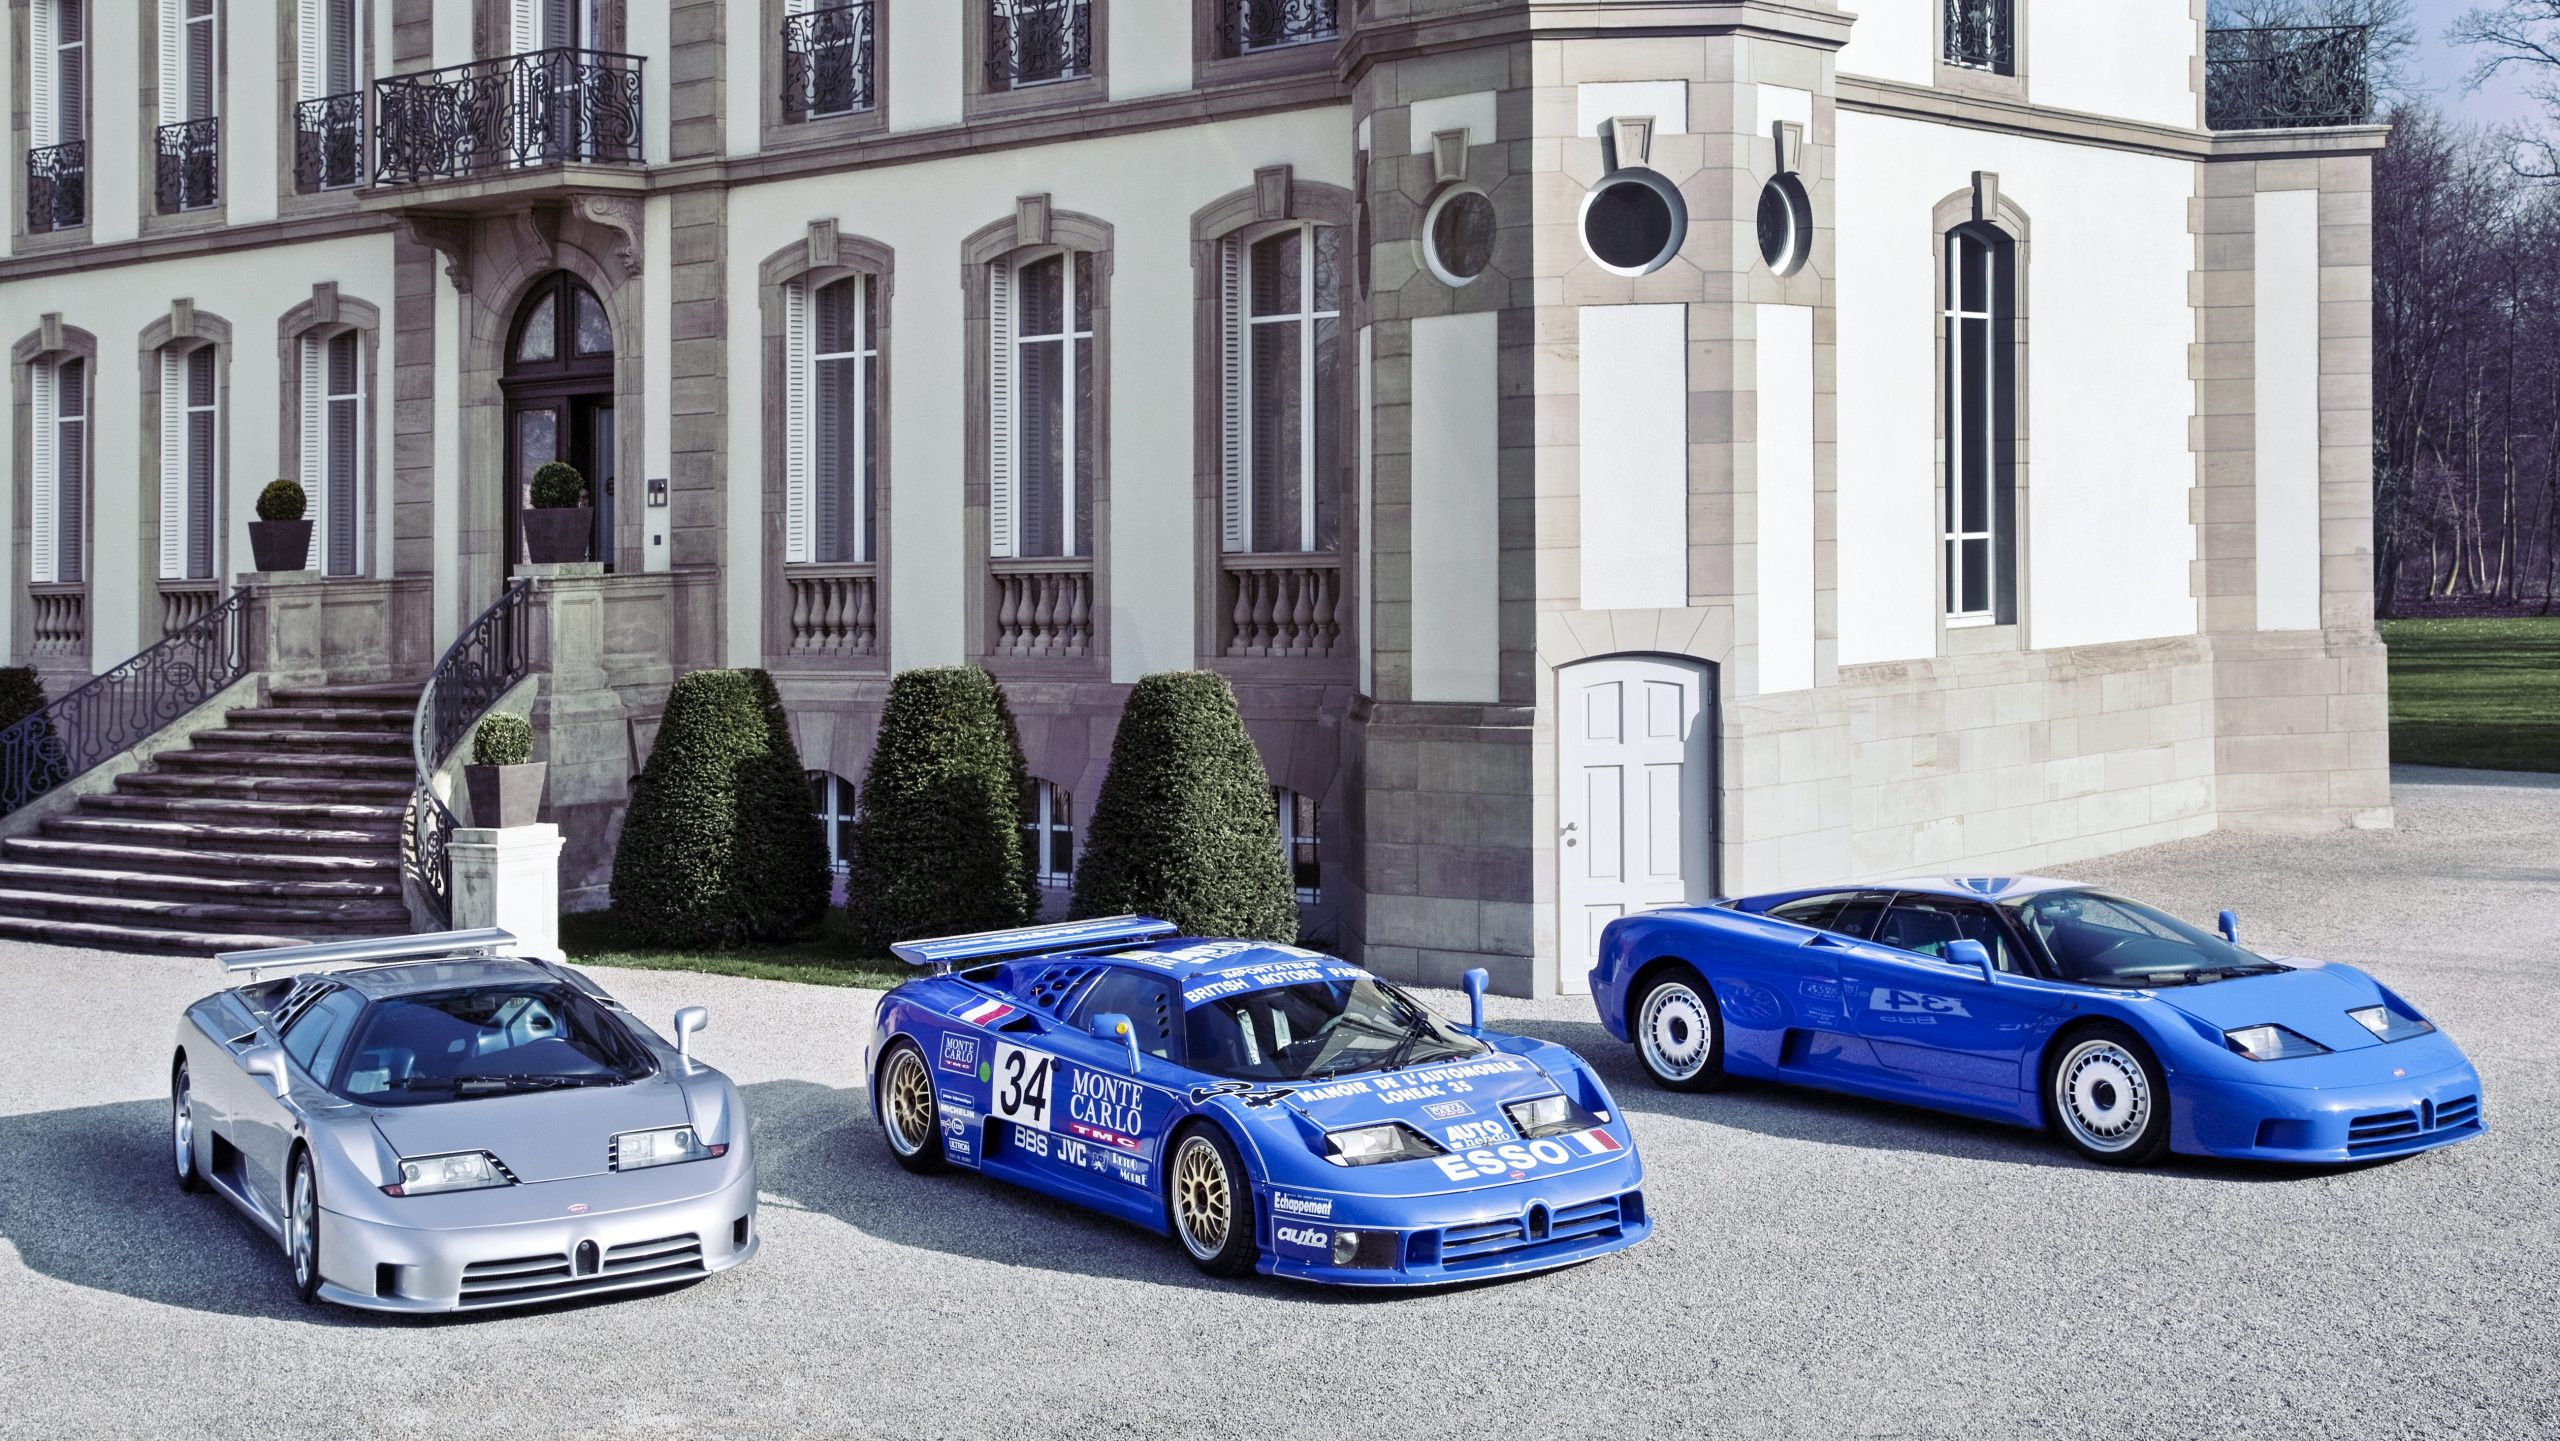 Three Bugatti EB110's parked up alongside each other